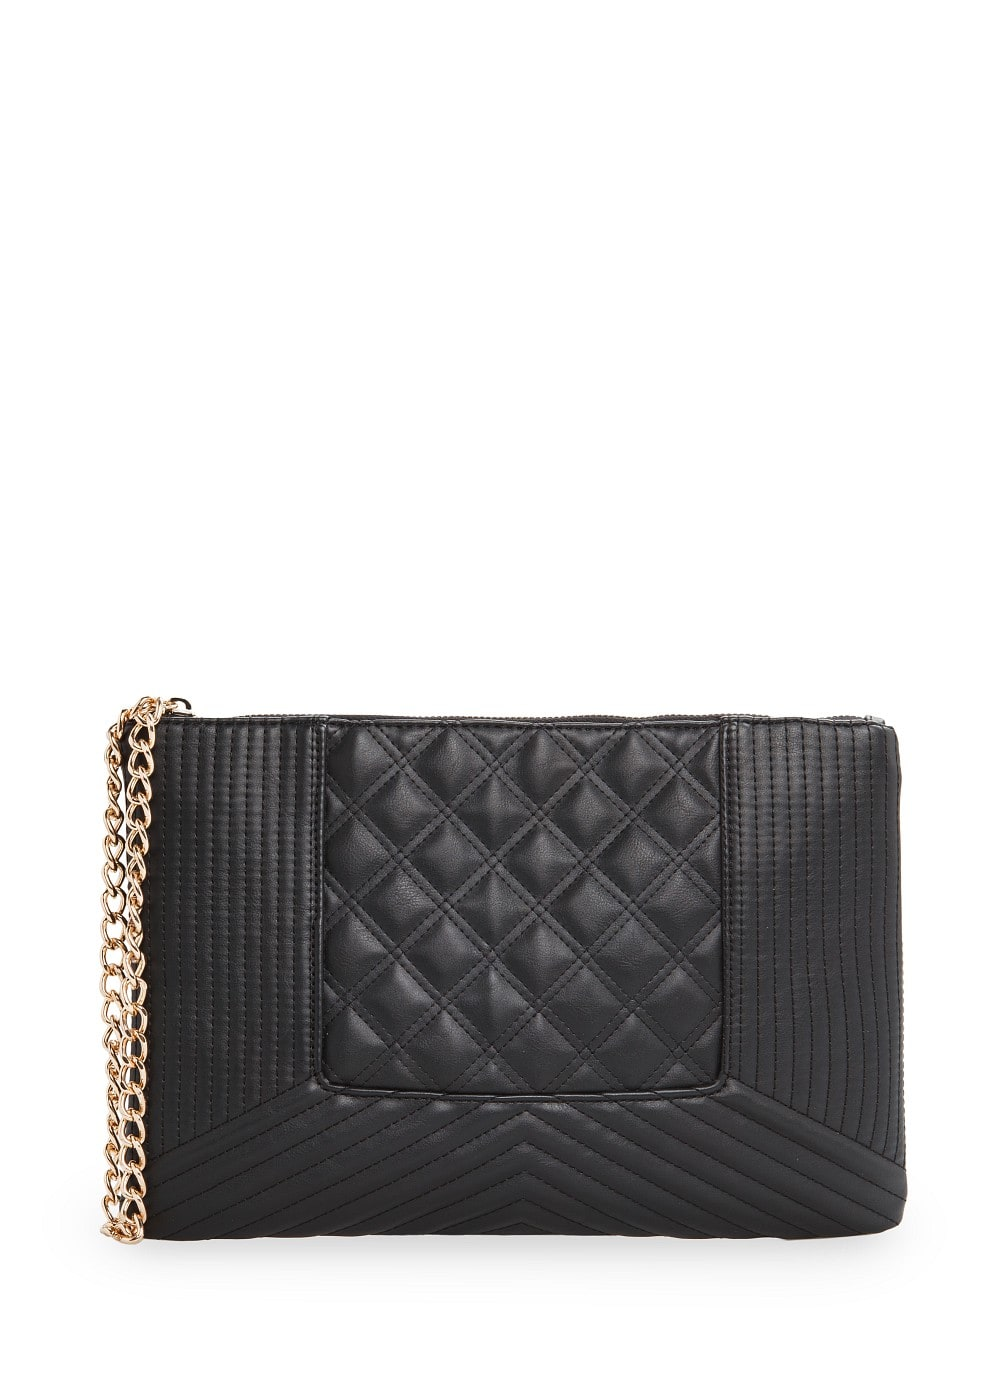 Faux leather quilted clutch